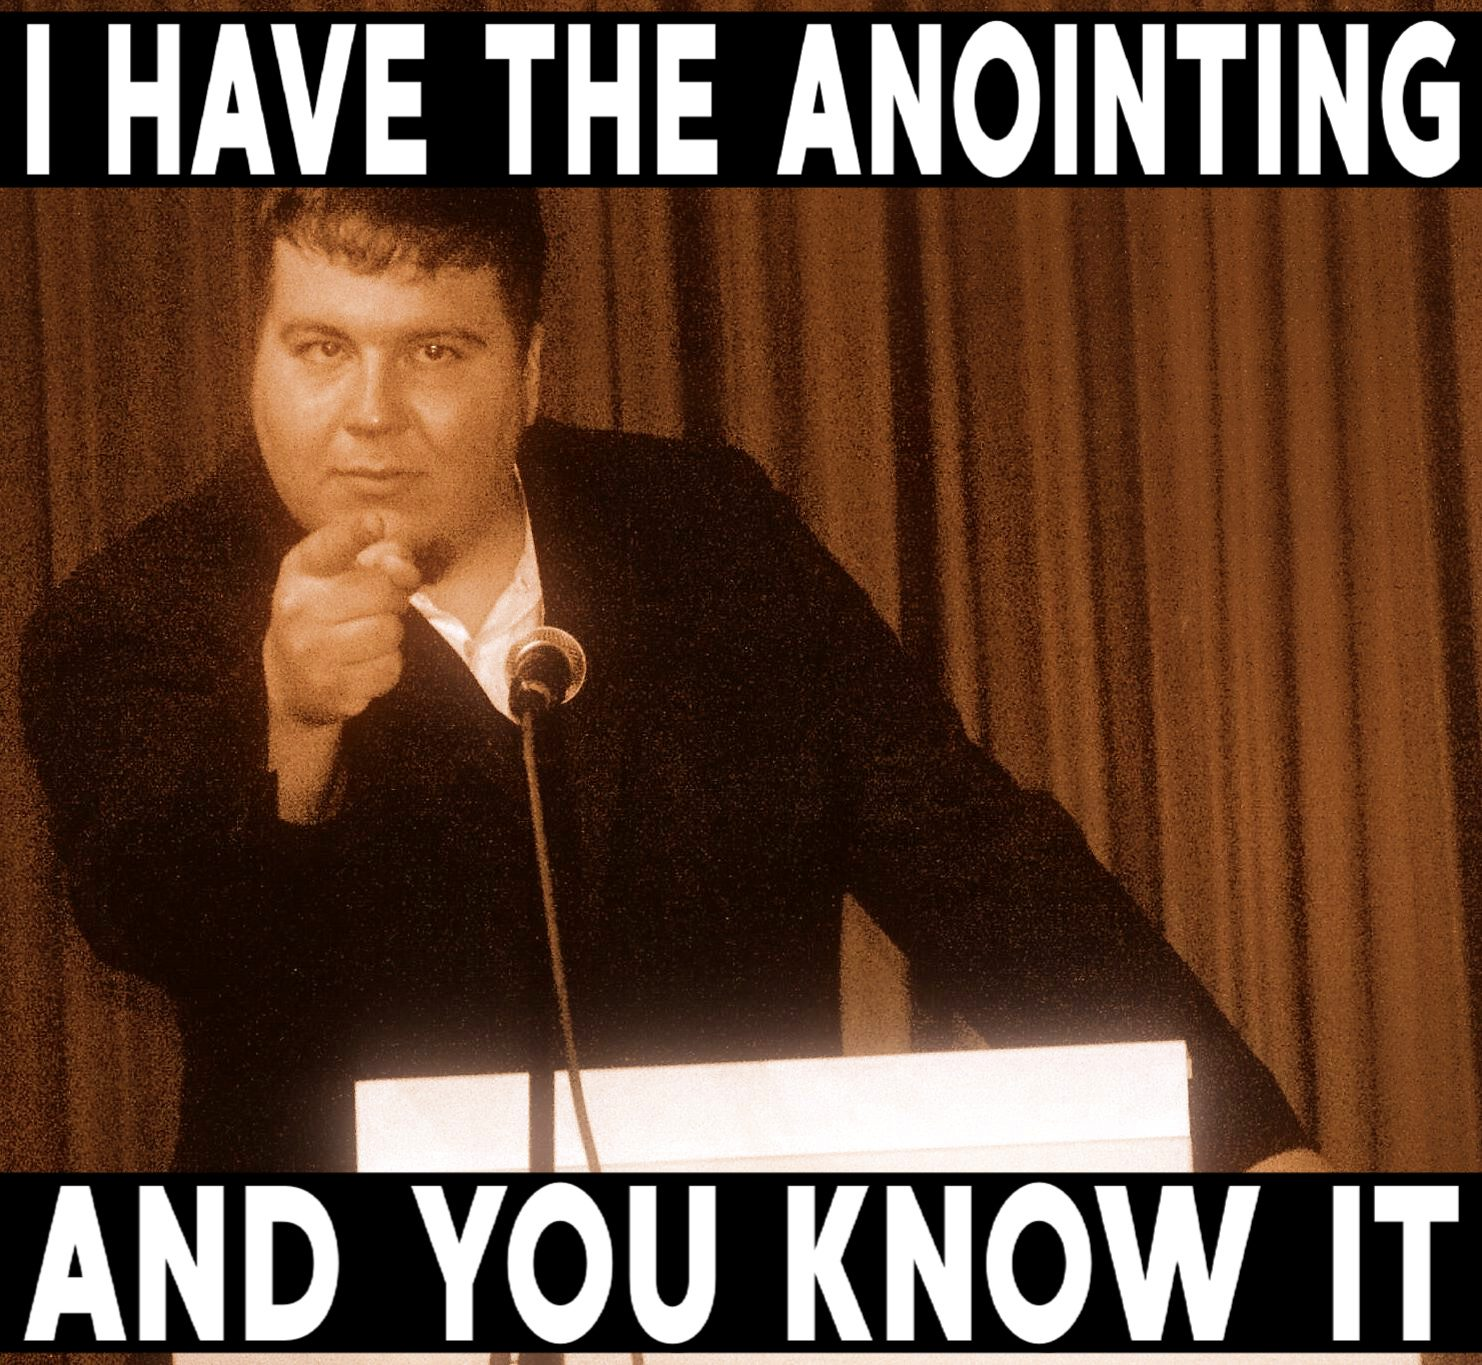 The Anointing Meme